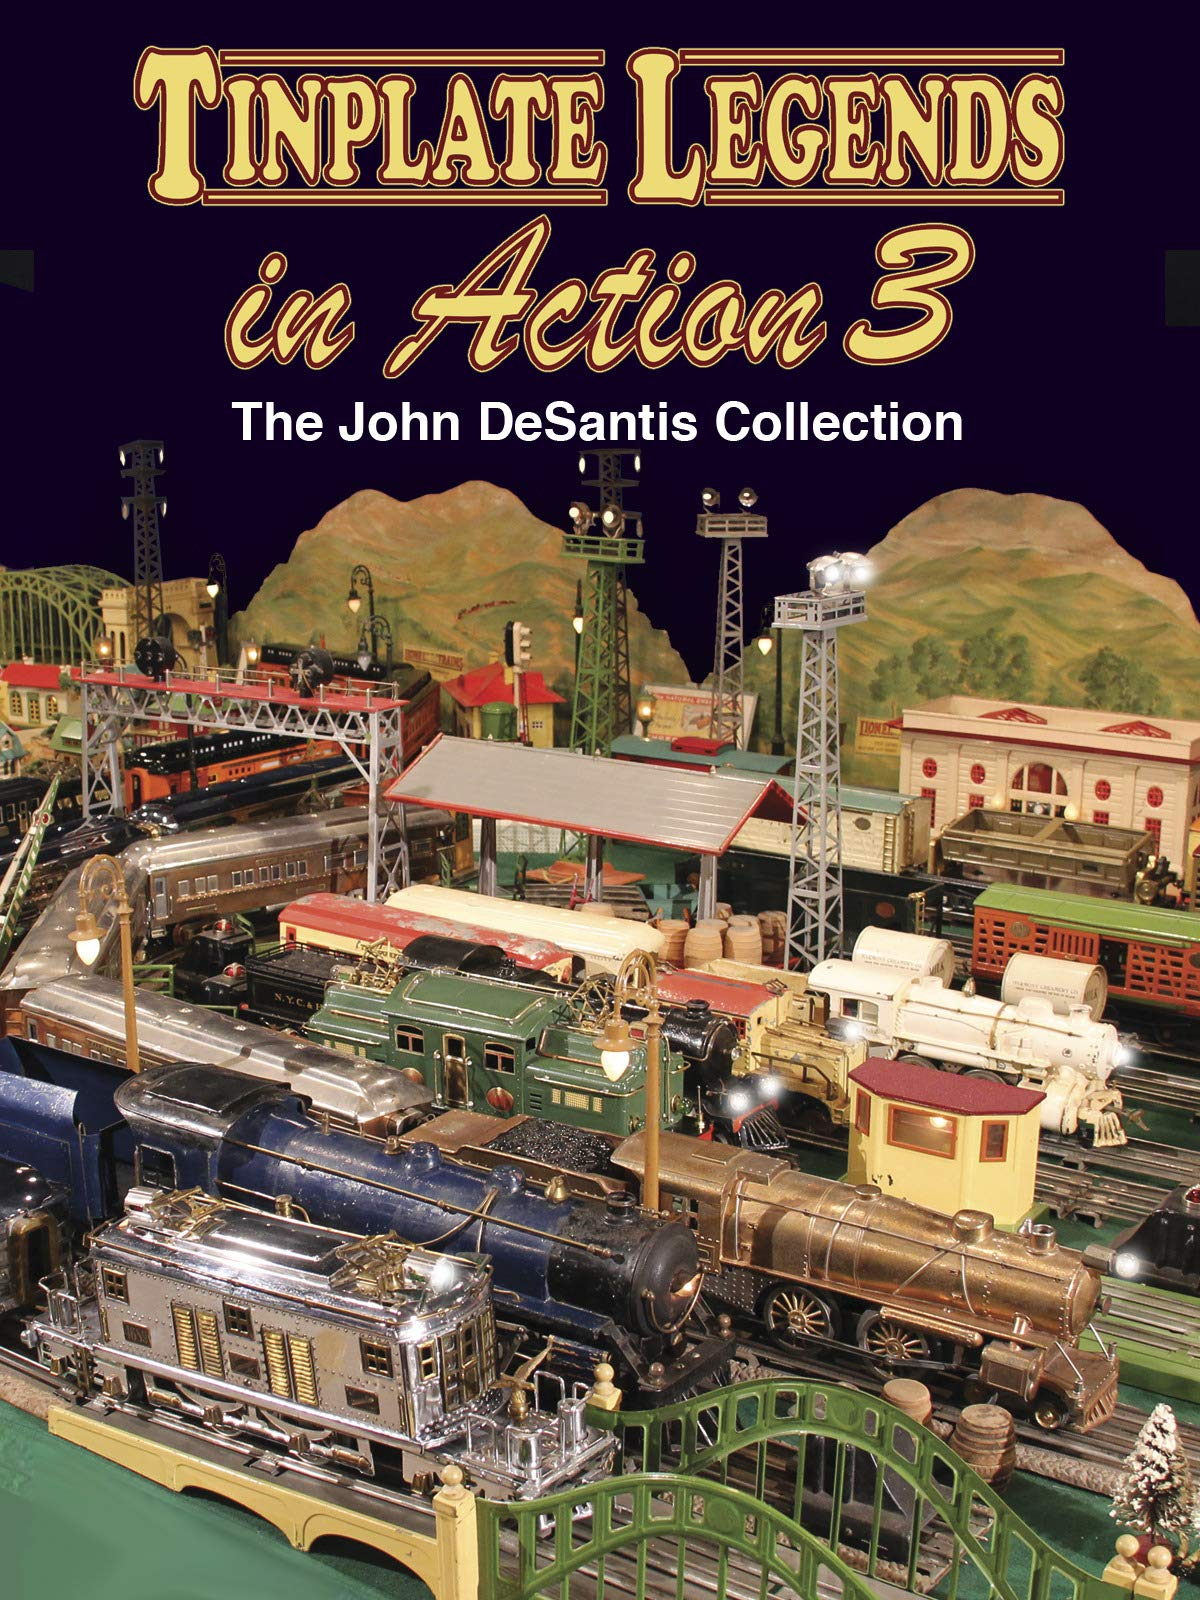 Tinplate Legends in Action 3: The John DeSantis Collection on Amazon Prime Video UK